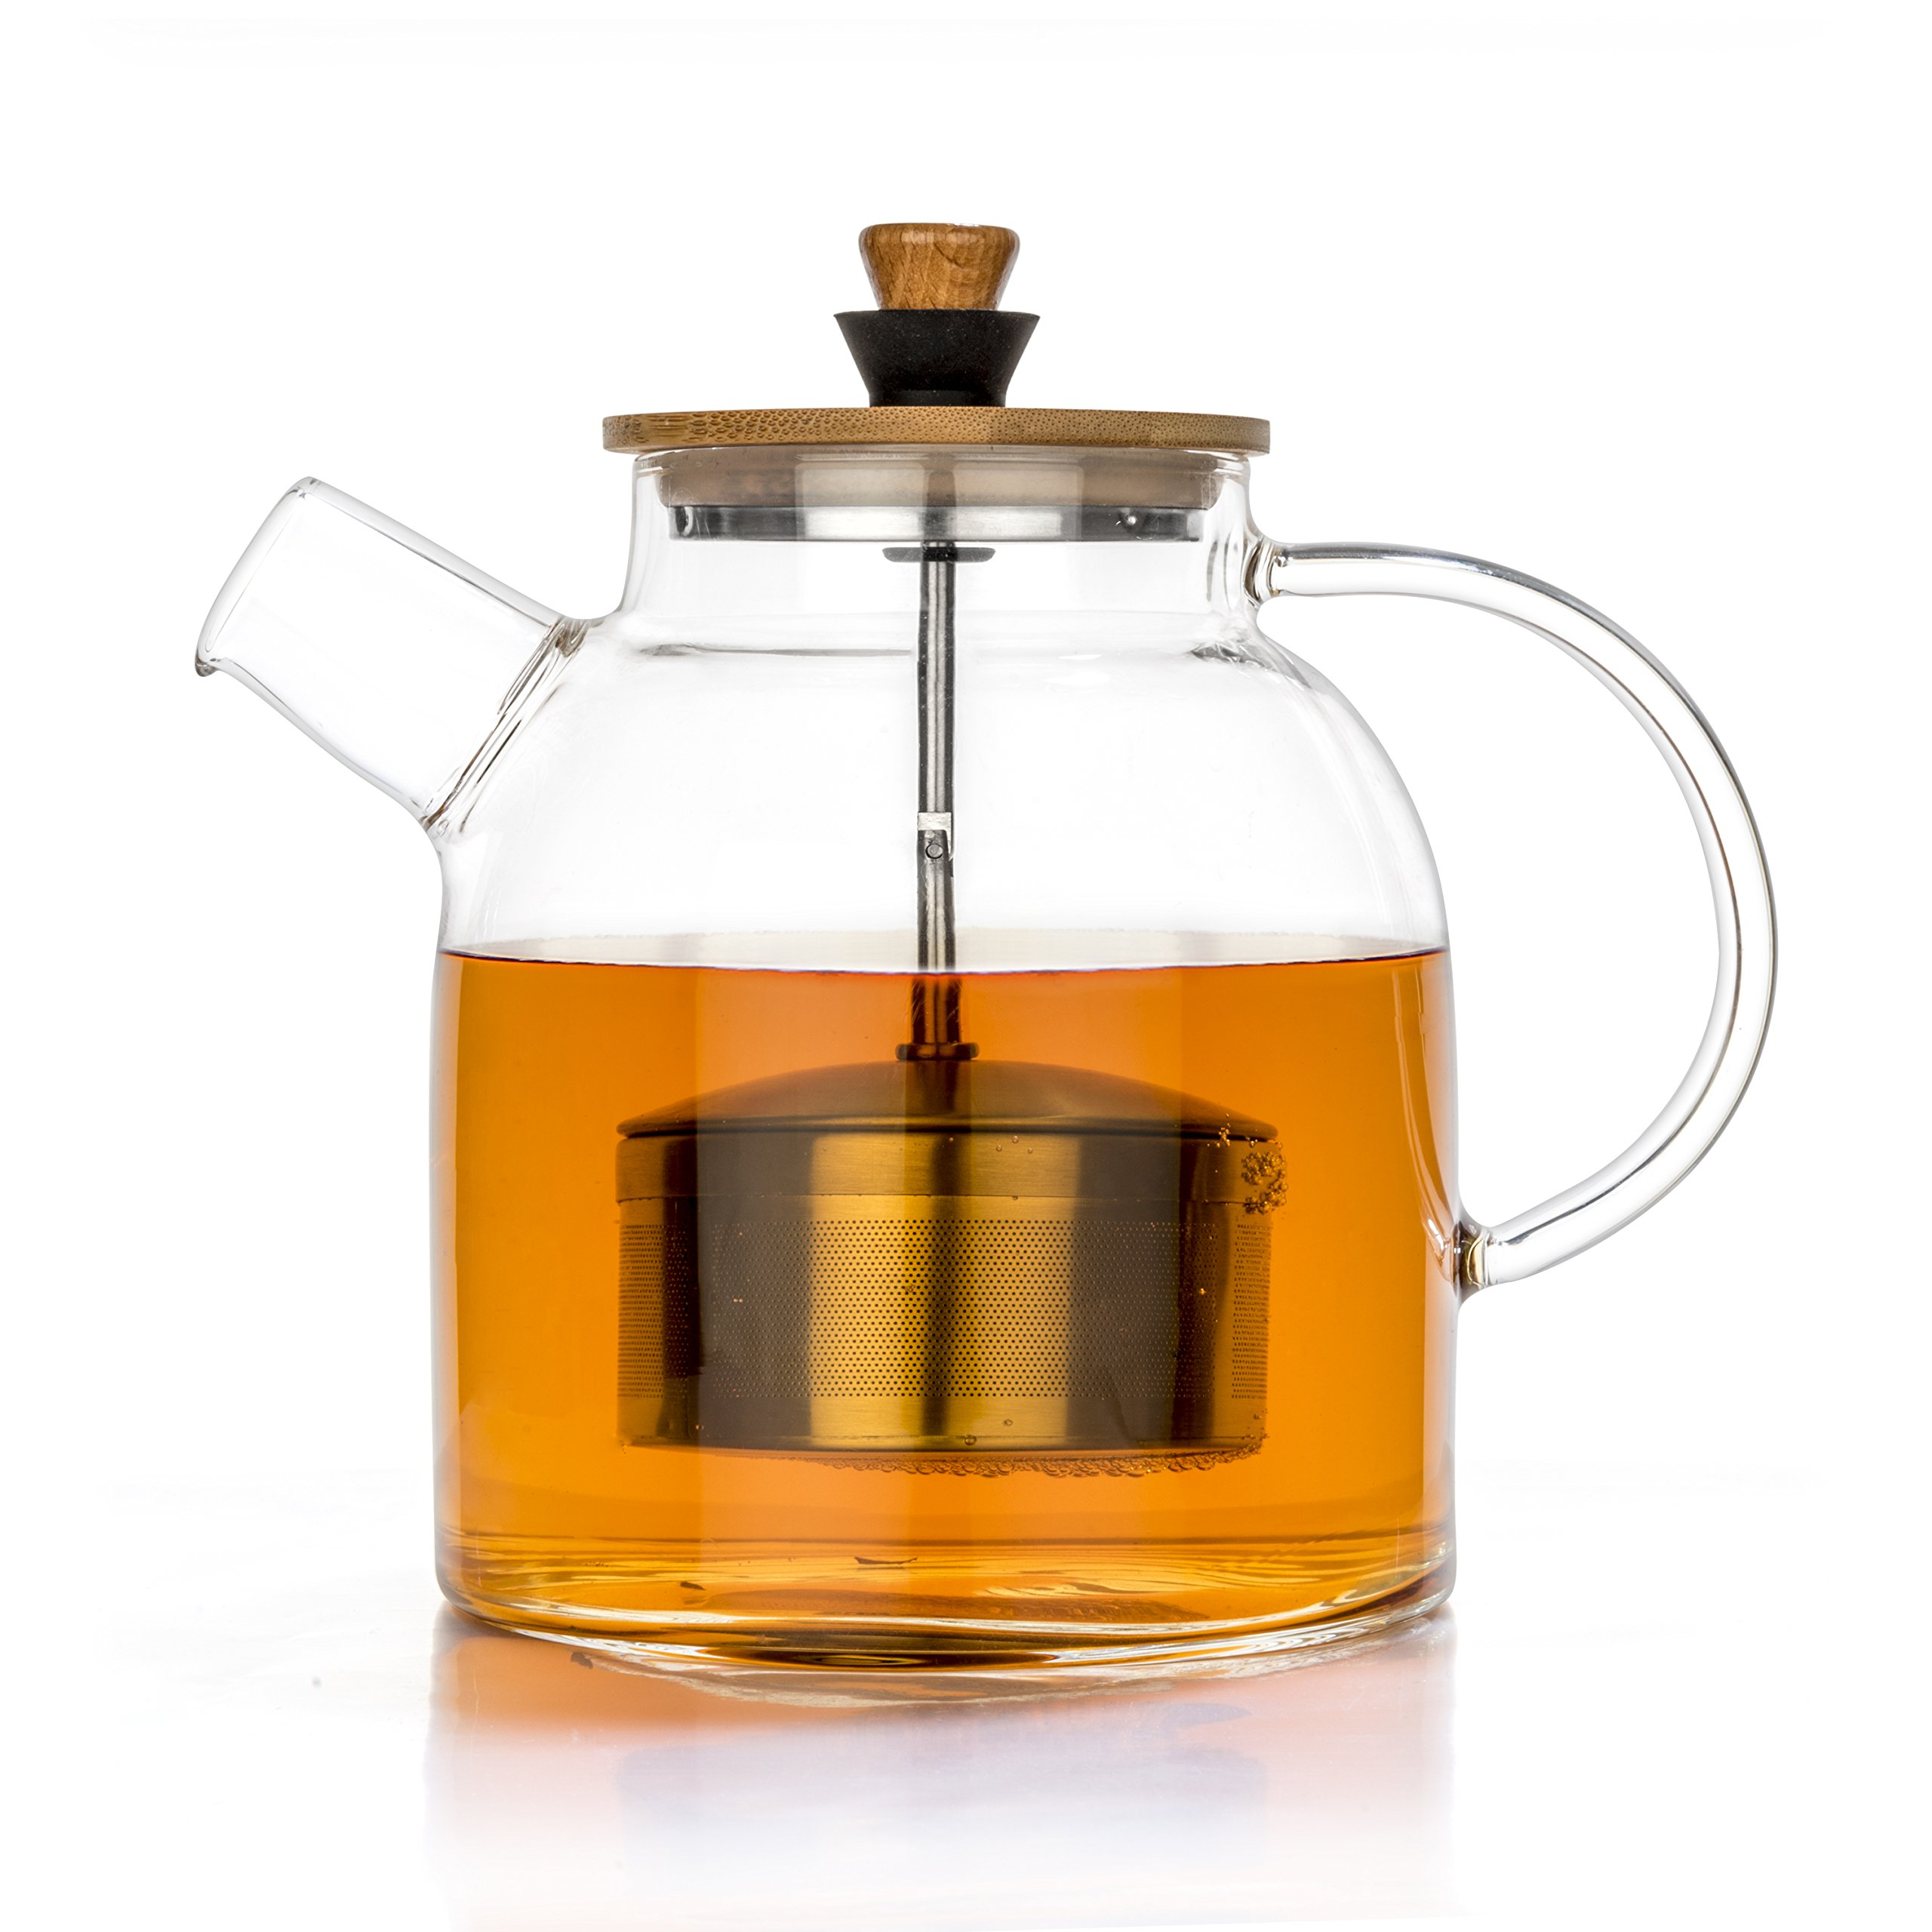 Tealyra - Glass Kettle 47-ounce - Stove-top Safe - Heat Resistant Borosilicate - Pitcher - Carafe - Teapot with Stainless Steel Infuser - No-Dripping - Tea Juice Water - Hot and Iced - 1400ml